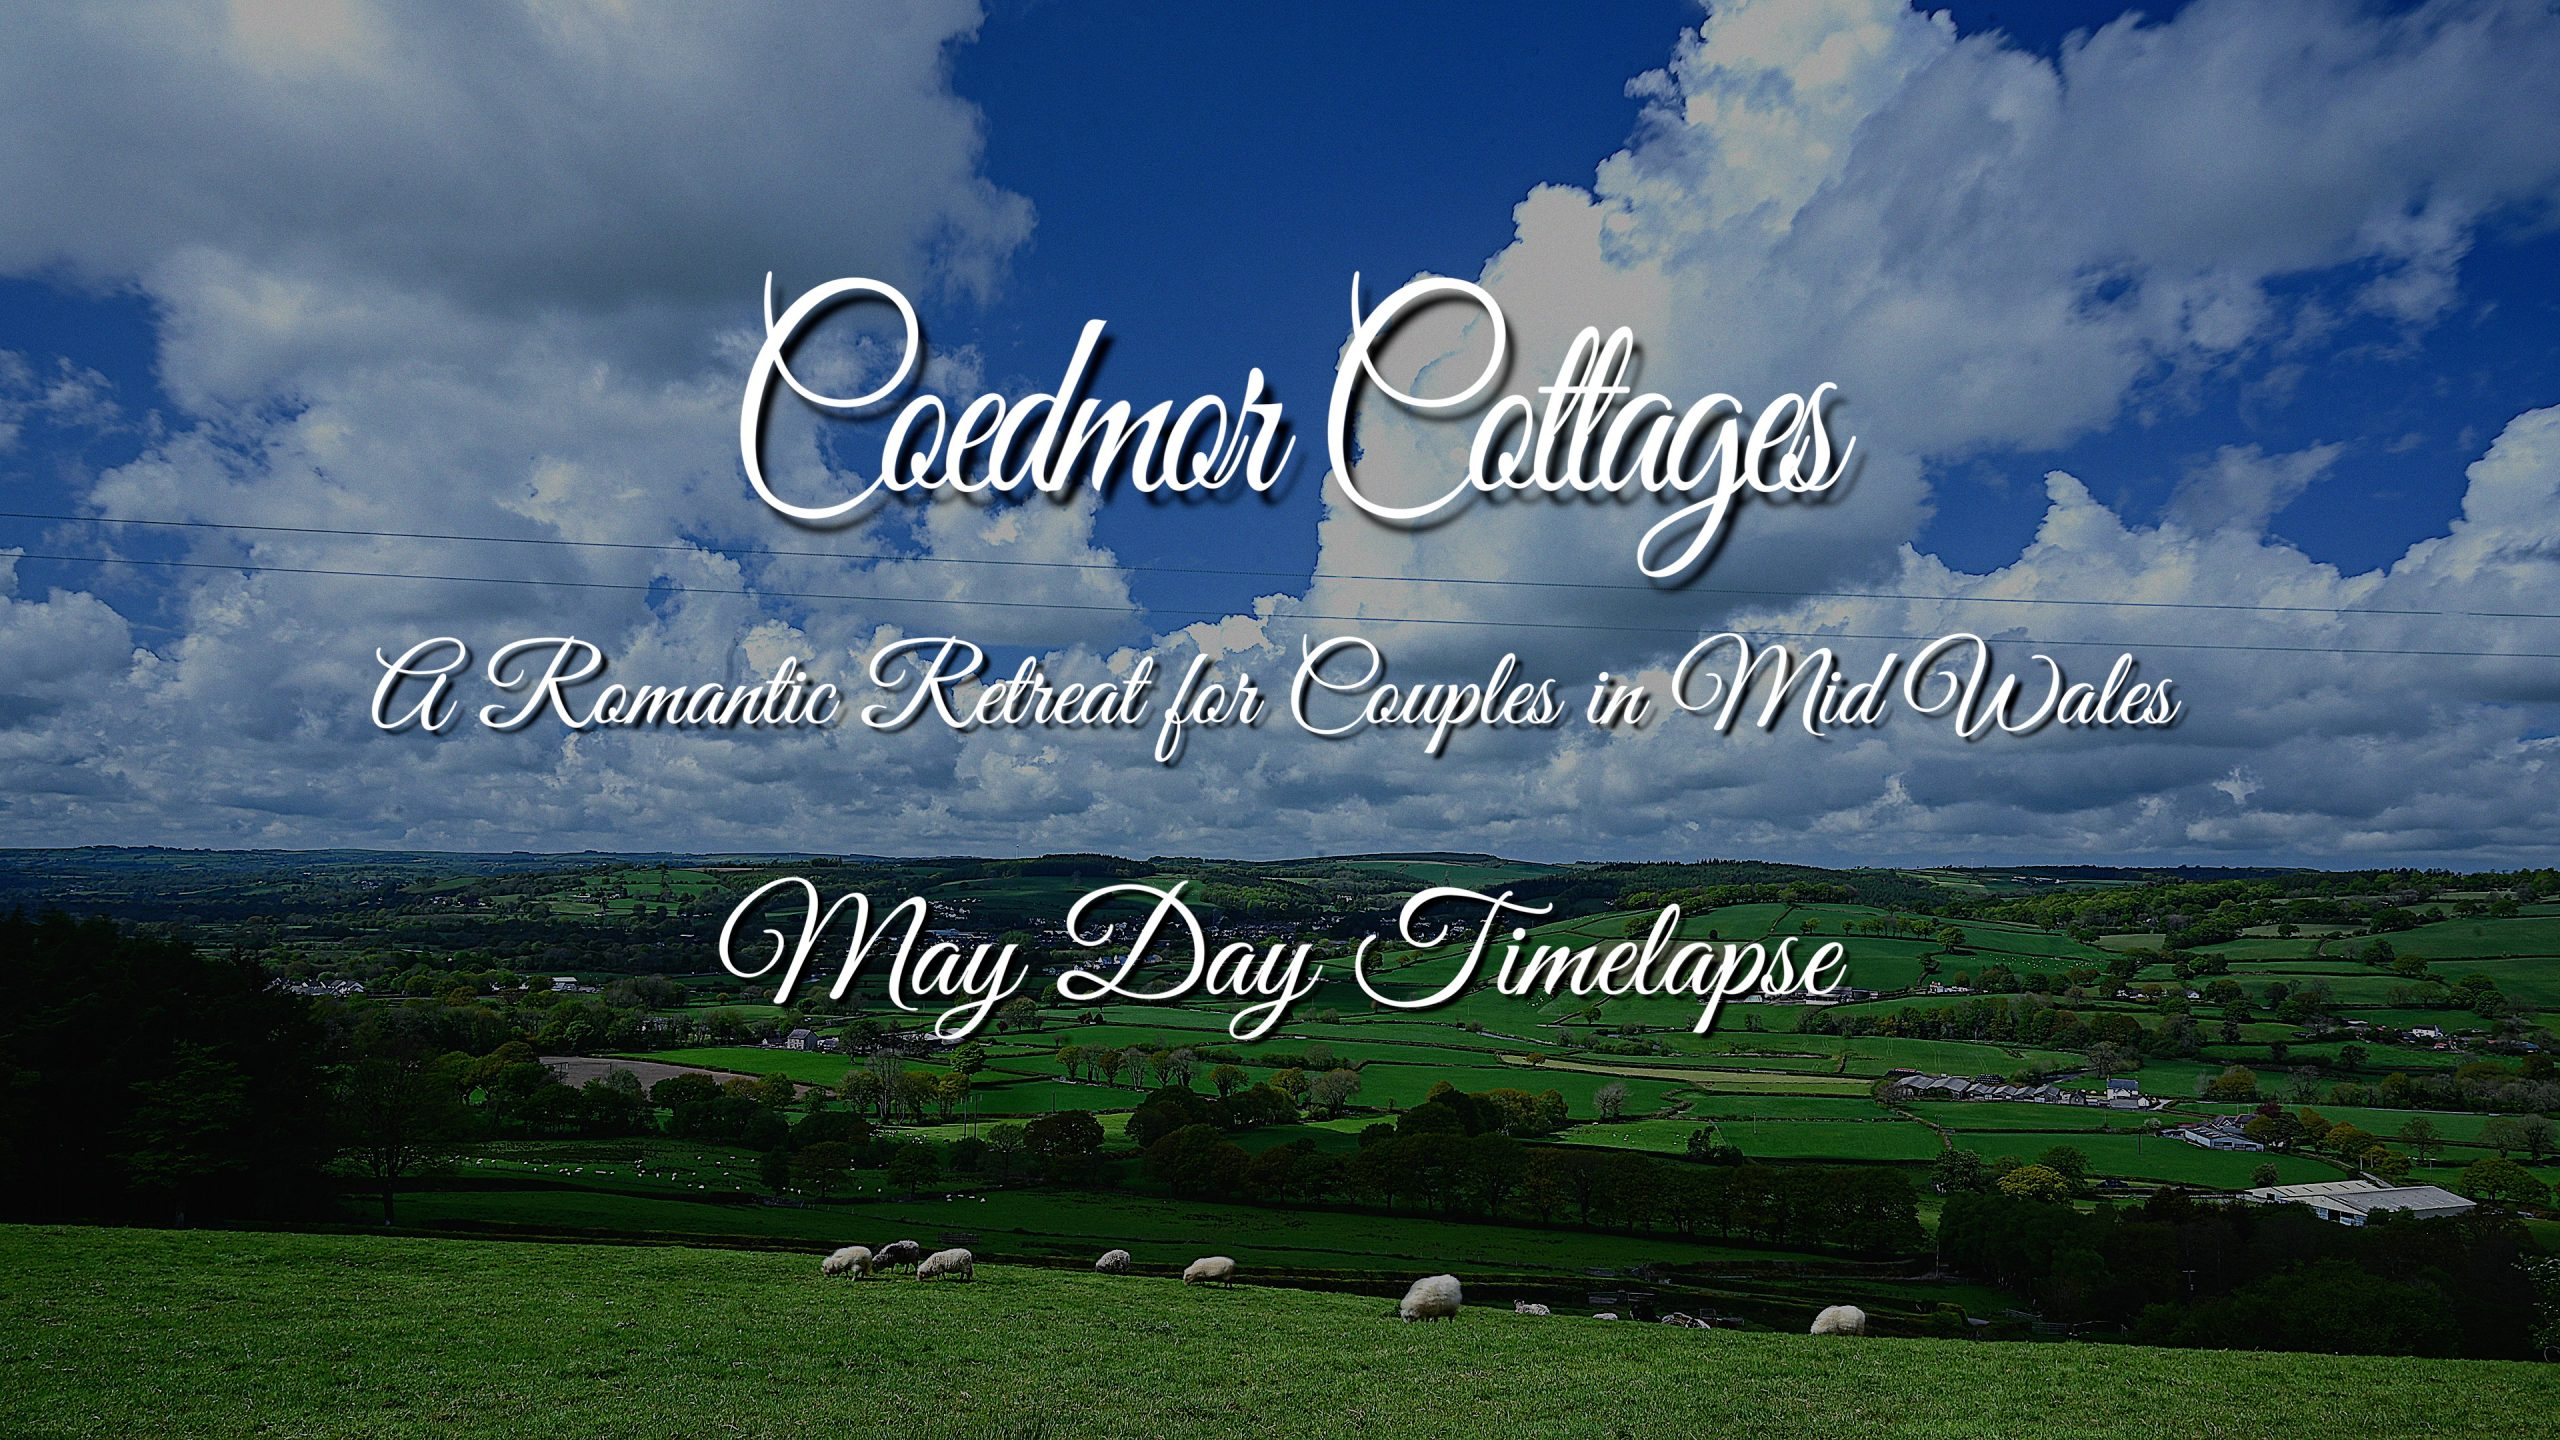 Cloudscape Time-lapse at Coedmor Cottages